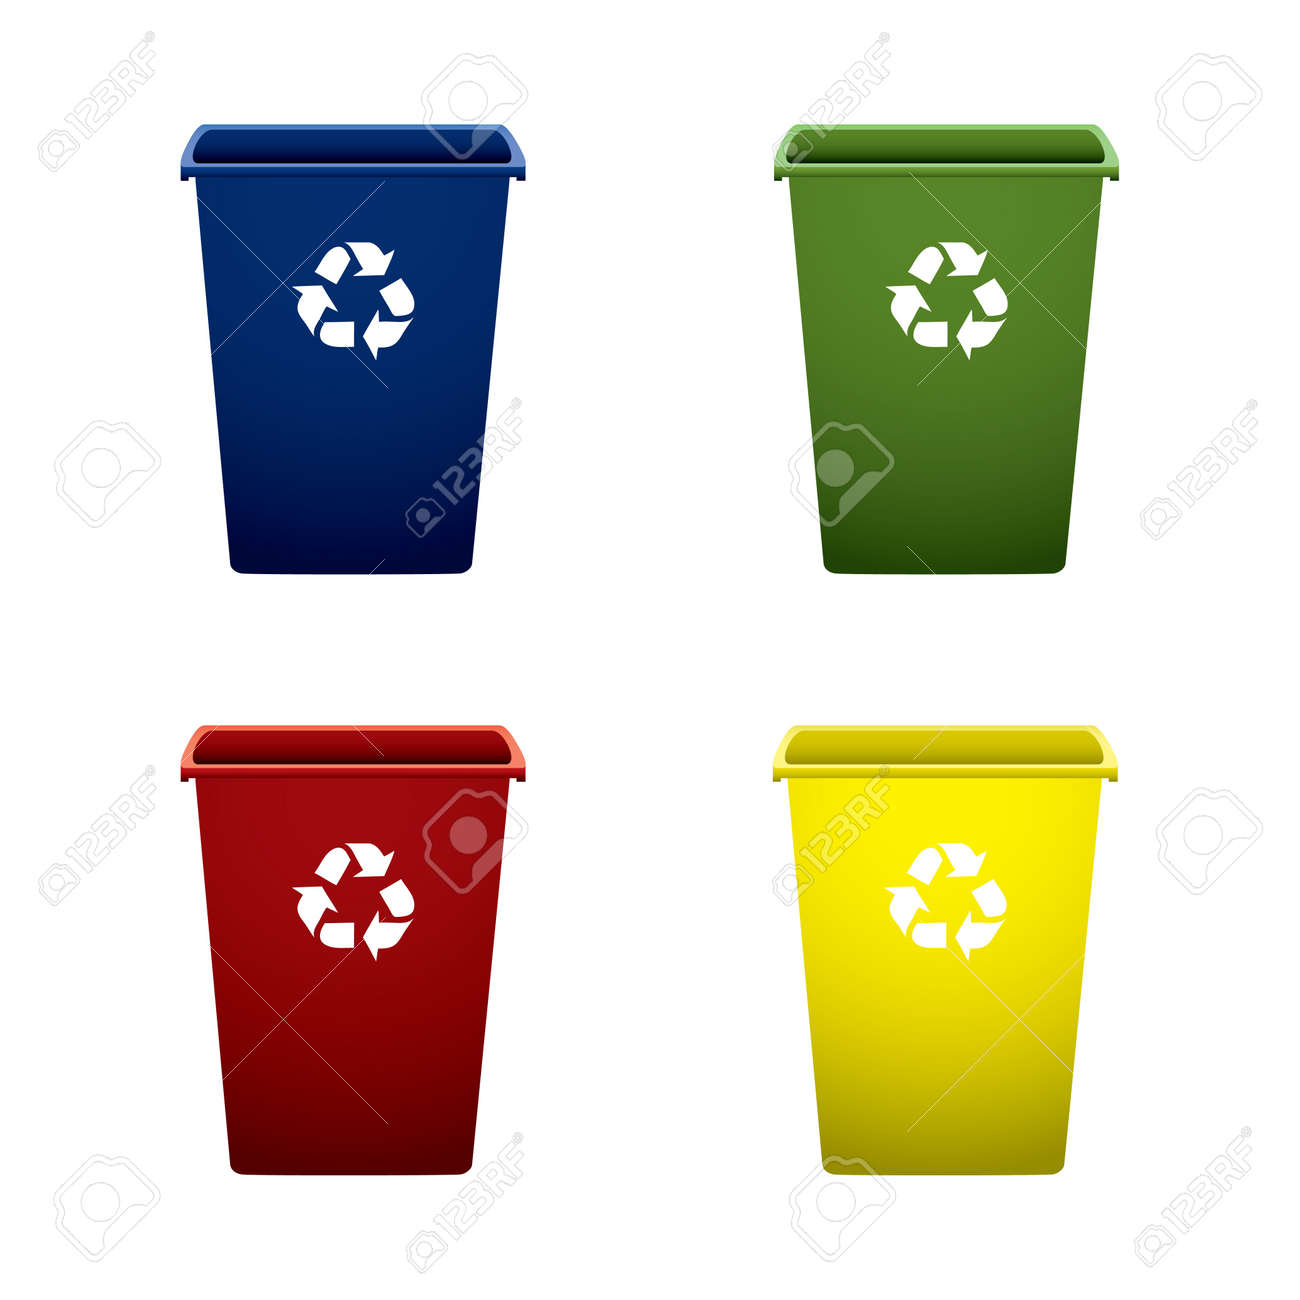 Collection of colourful recycle trash or rubbish bins - 9923693